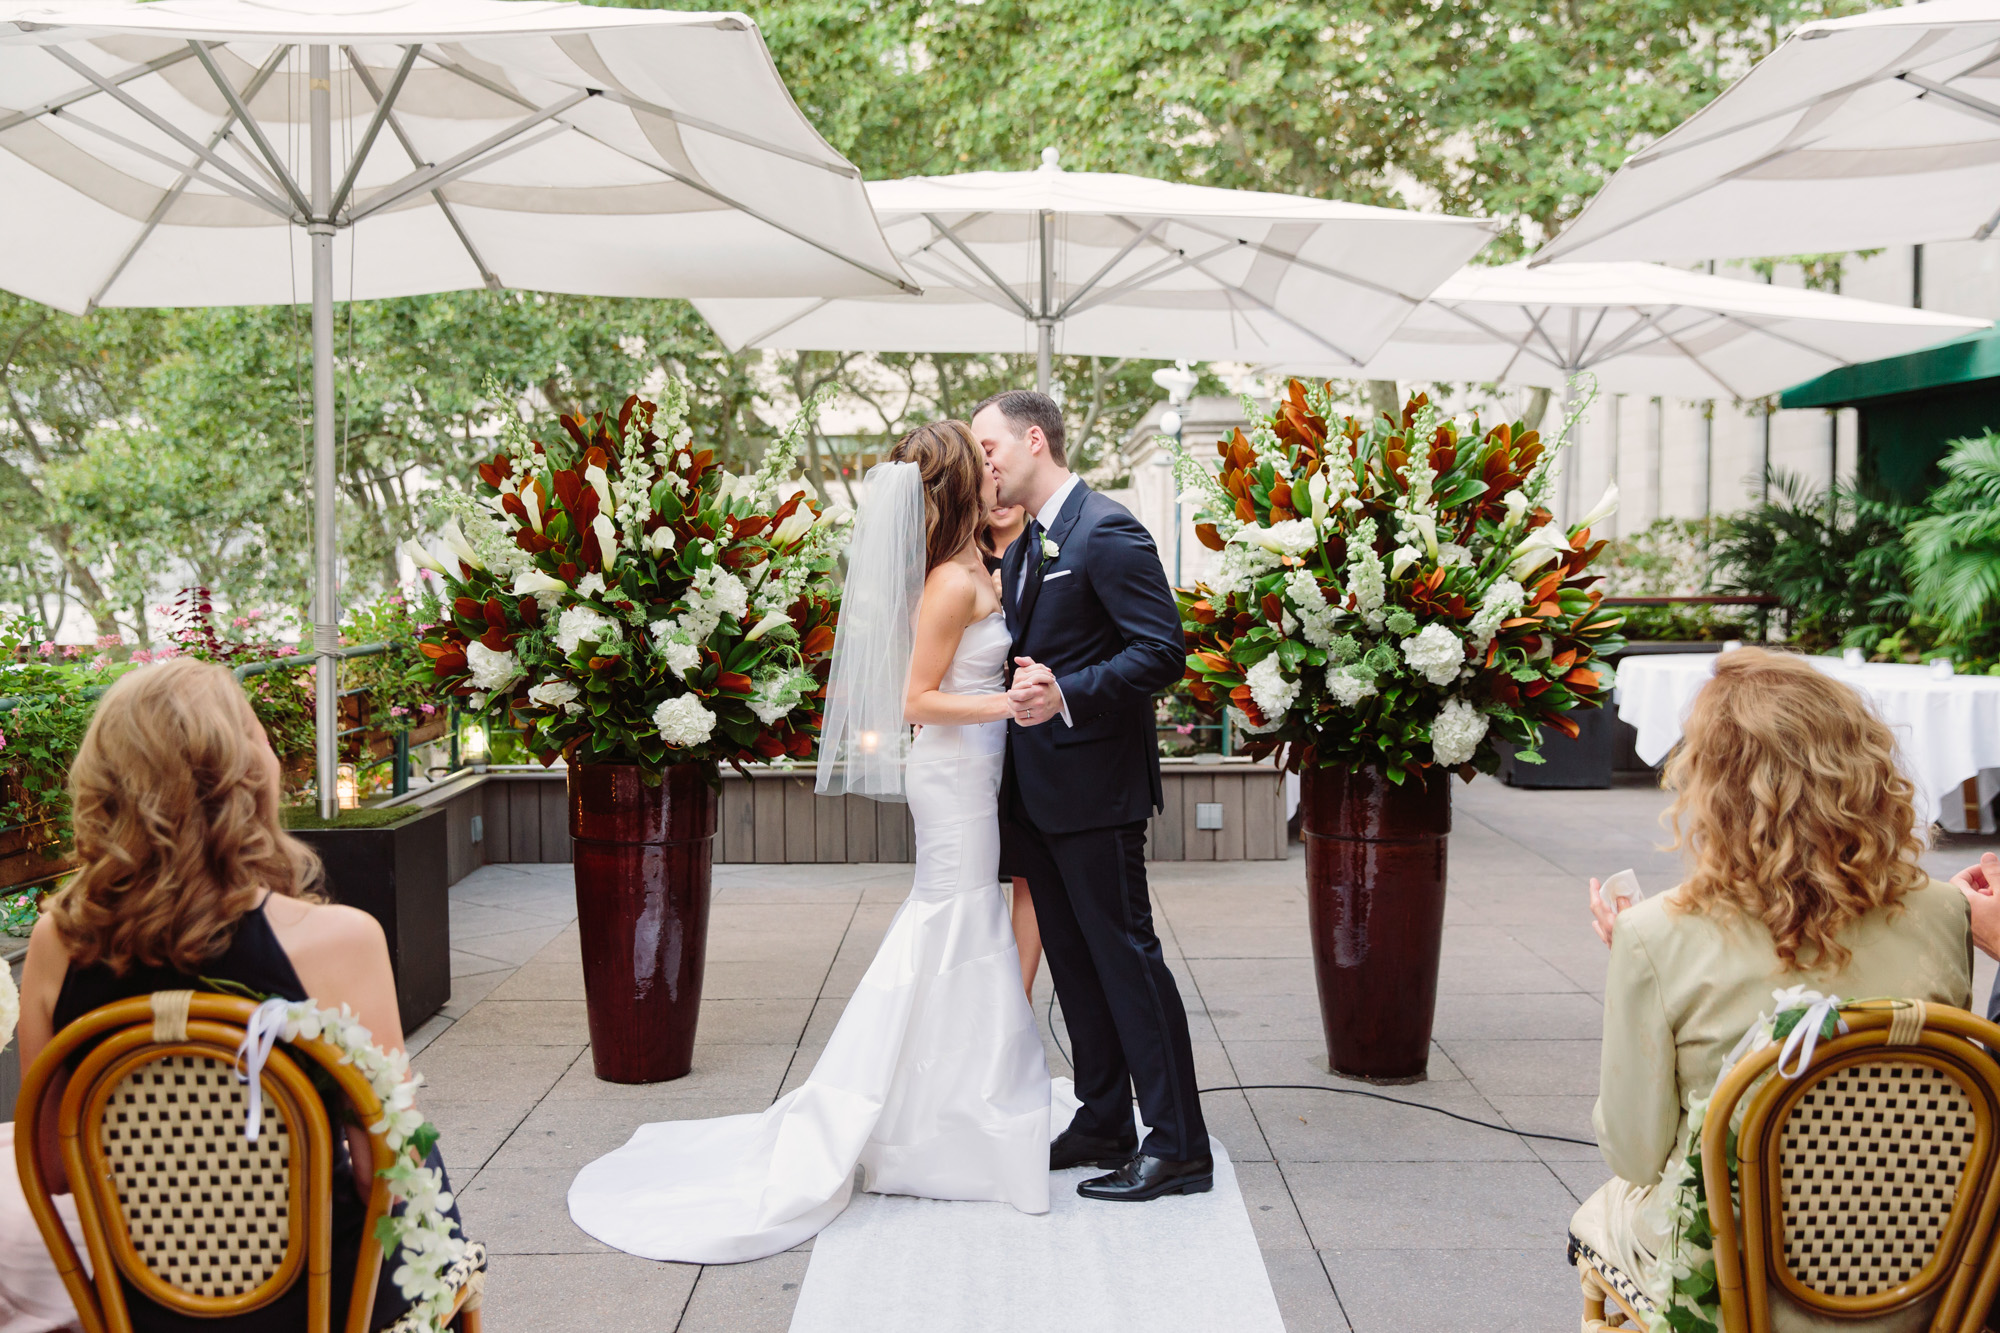 47_Ali_Lloyd_Bryant_Park_Grill_Wedding_NYC_Tanya_Salazar_Photography_474.jpg